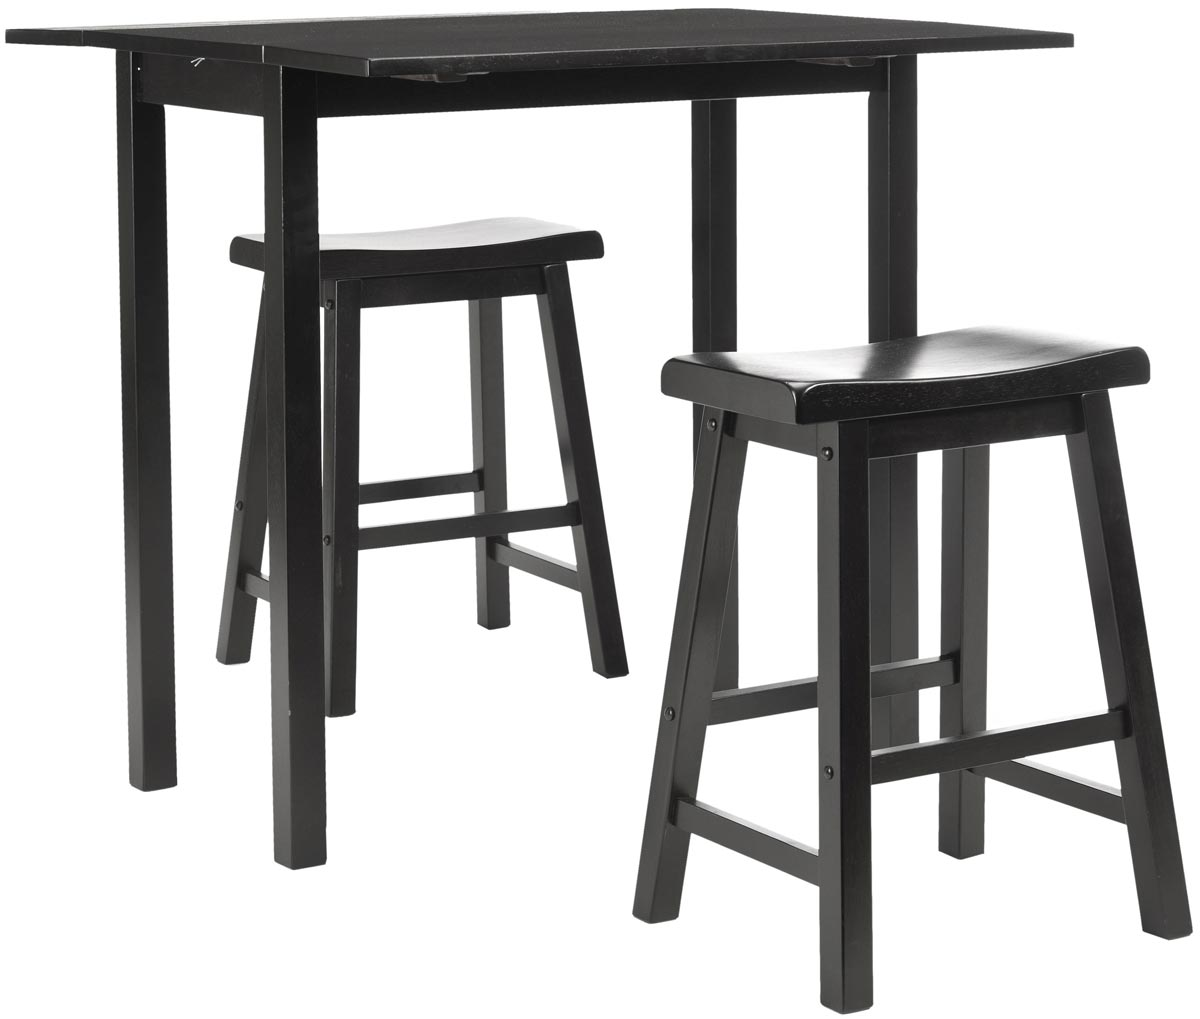 Amh8502a Dining Tables Furniture By Safavieh